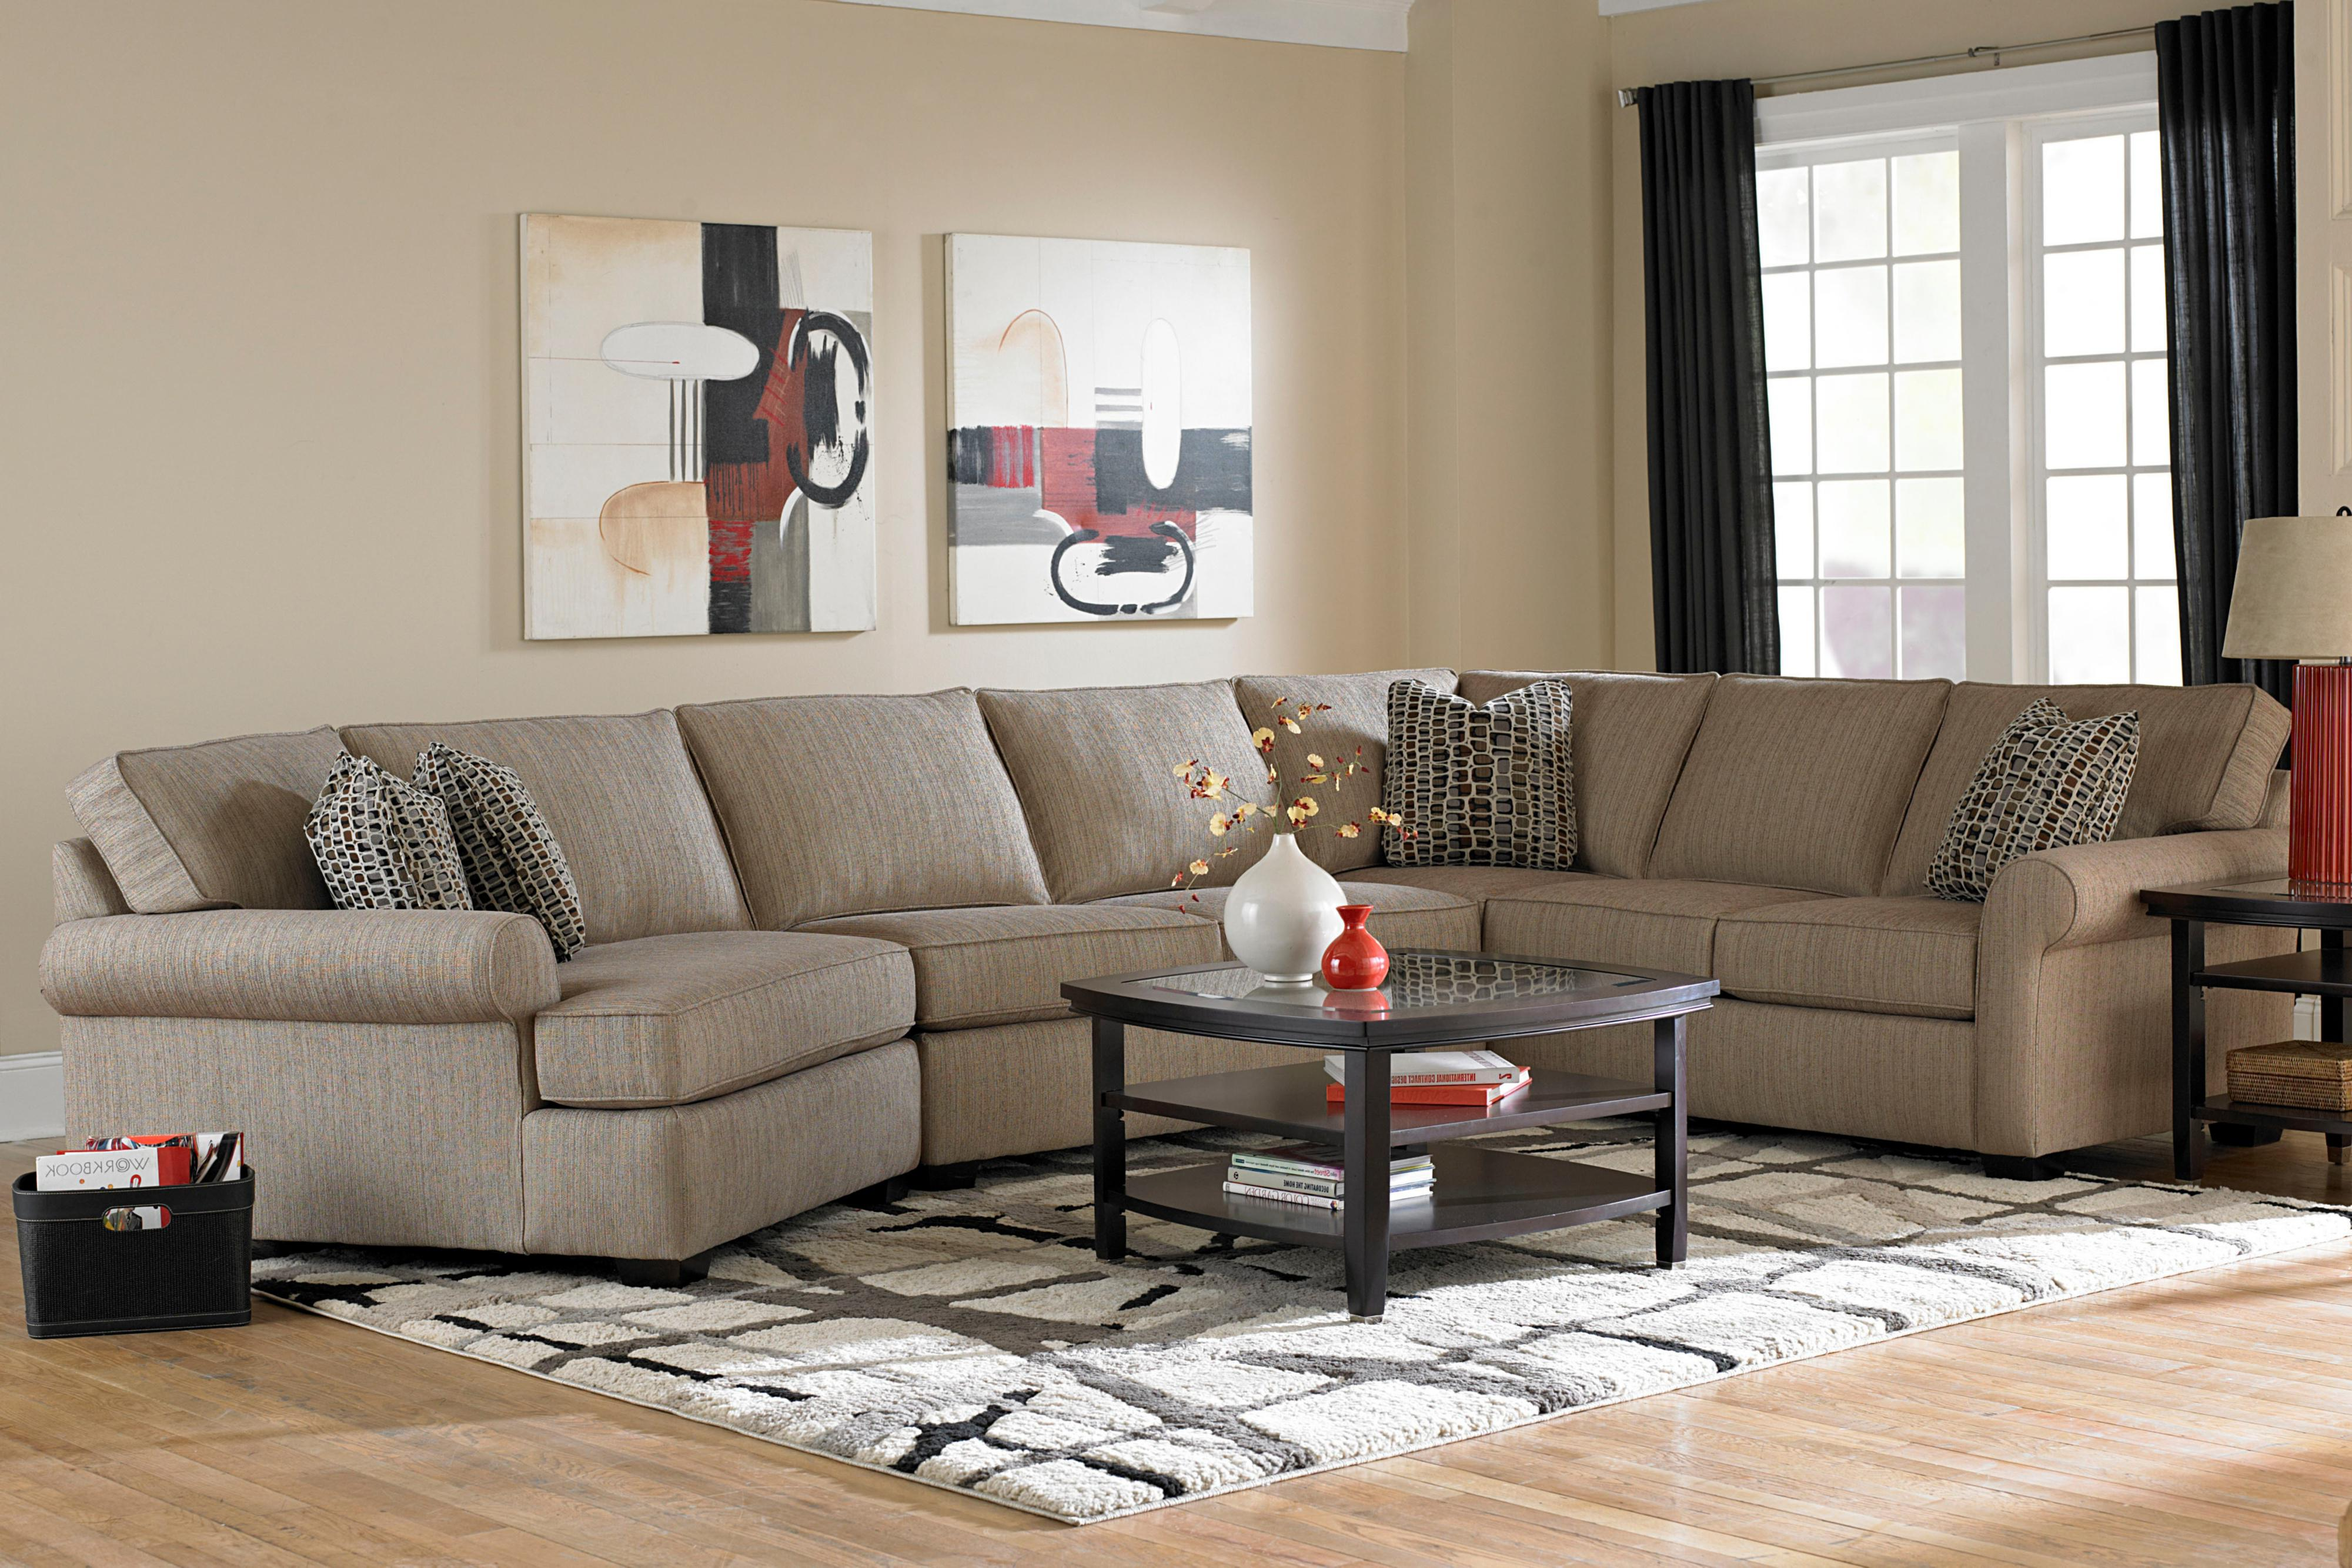 Broyhill Furniture Ethan Transitional Sectional Sofa with Left Facing Cuddler Chair - AHFA - Sofa Sectional Dealer Locator : left cuddler sectional - Sectionals, Sofas & Couches